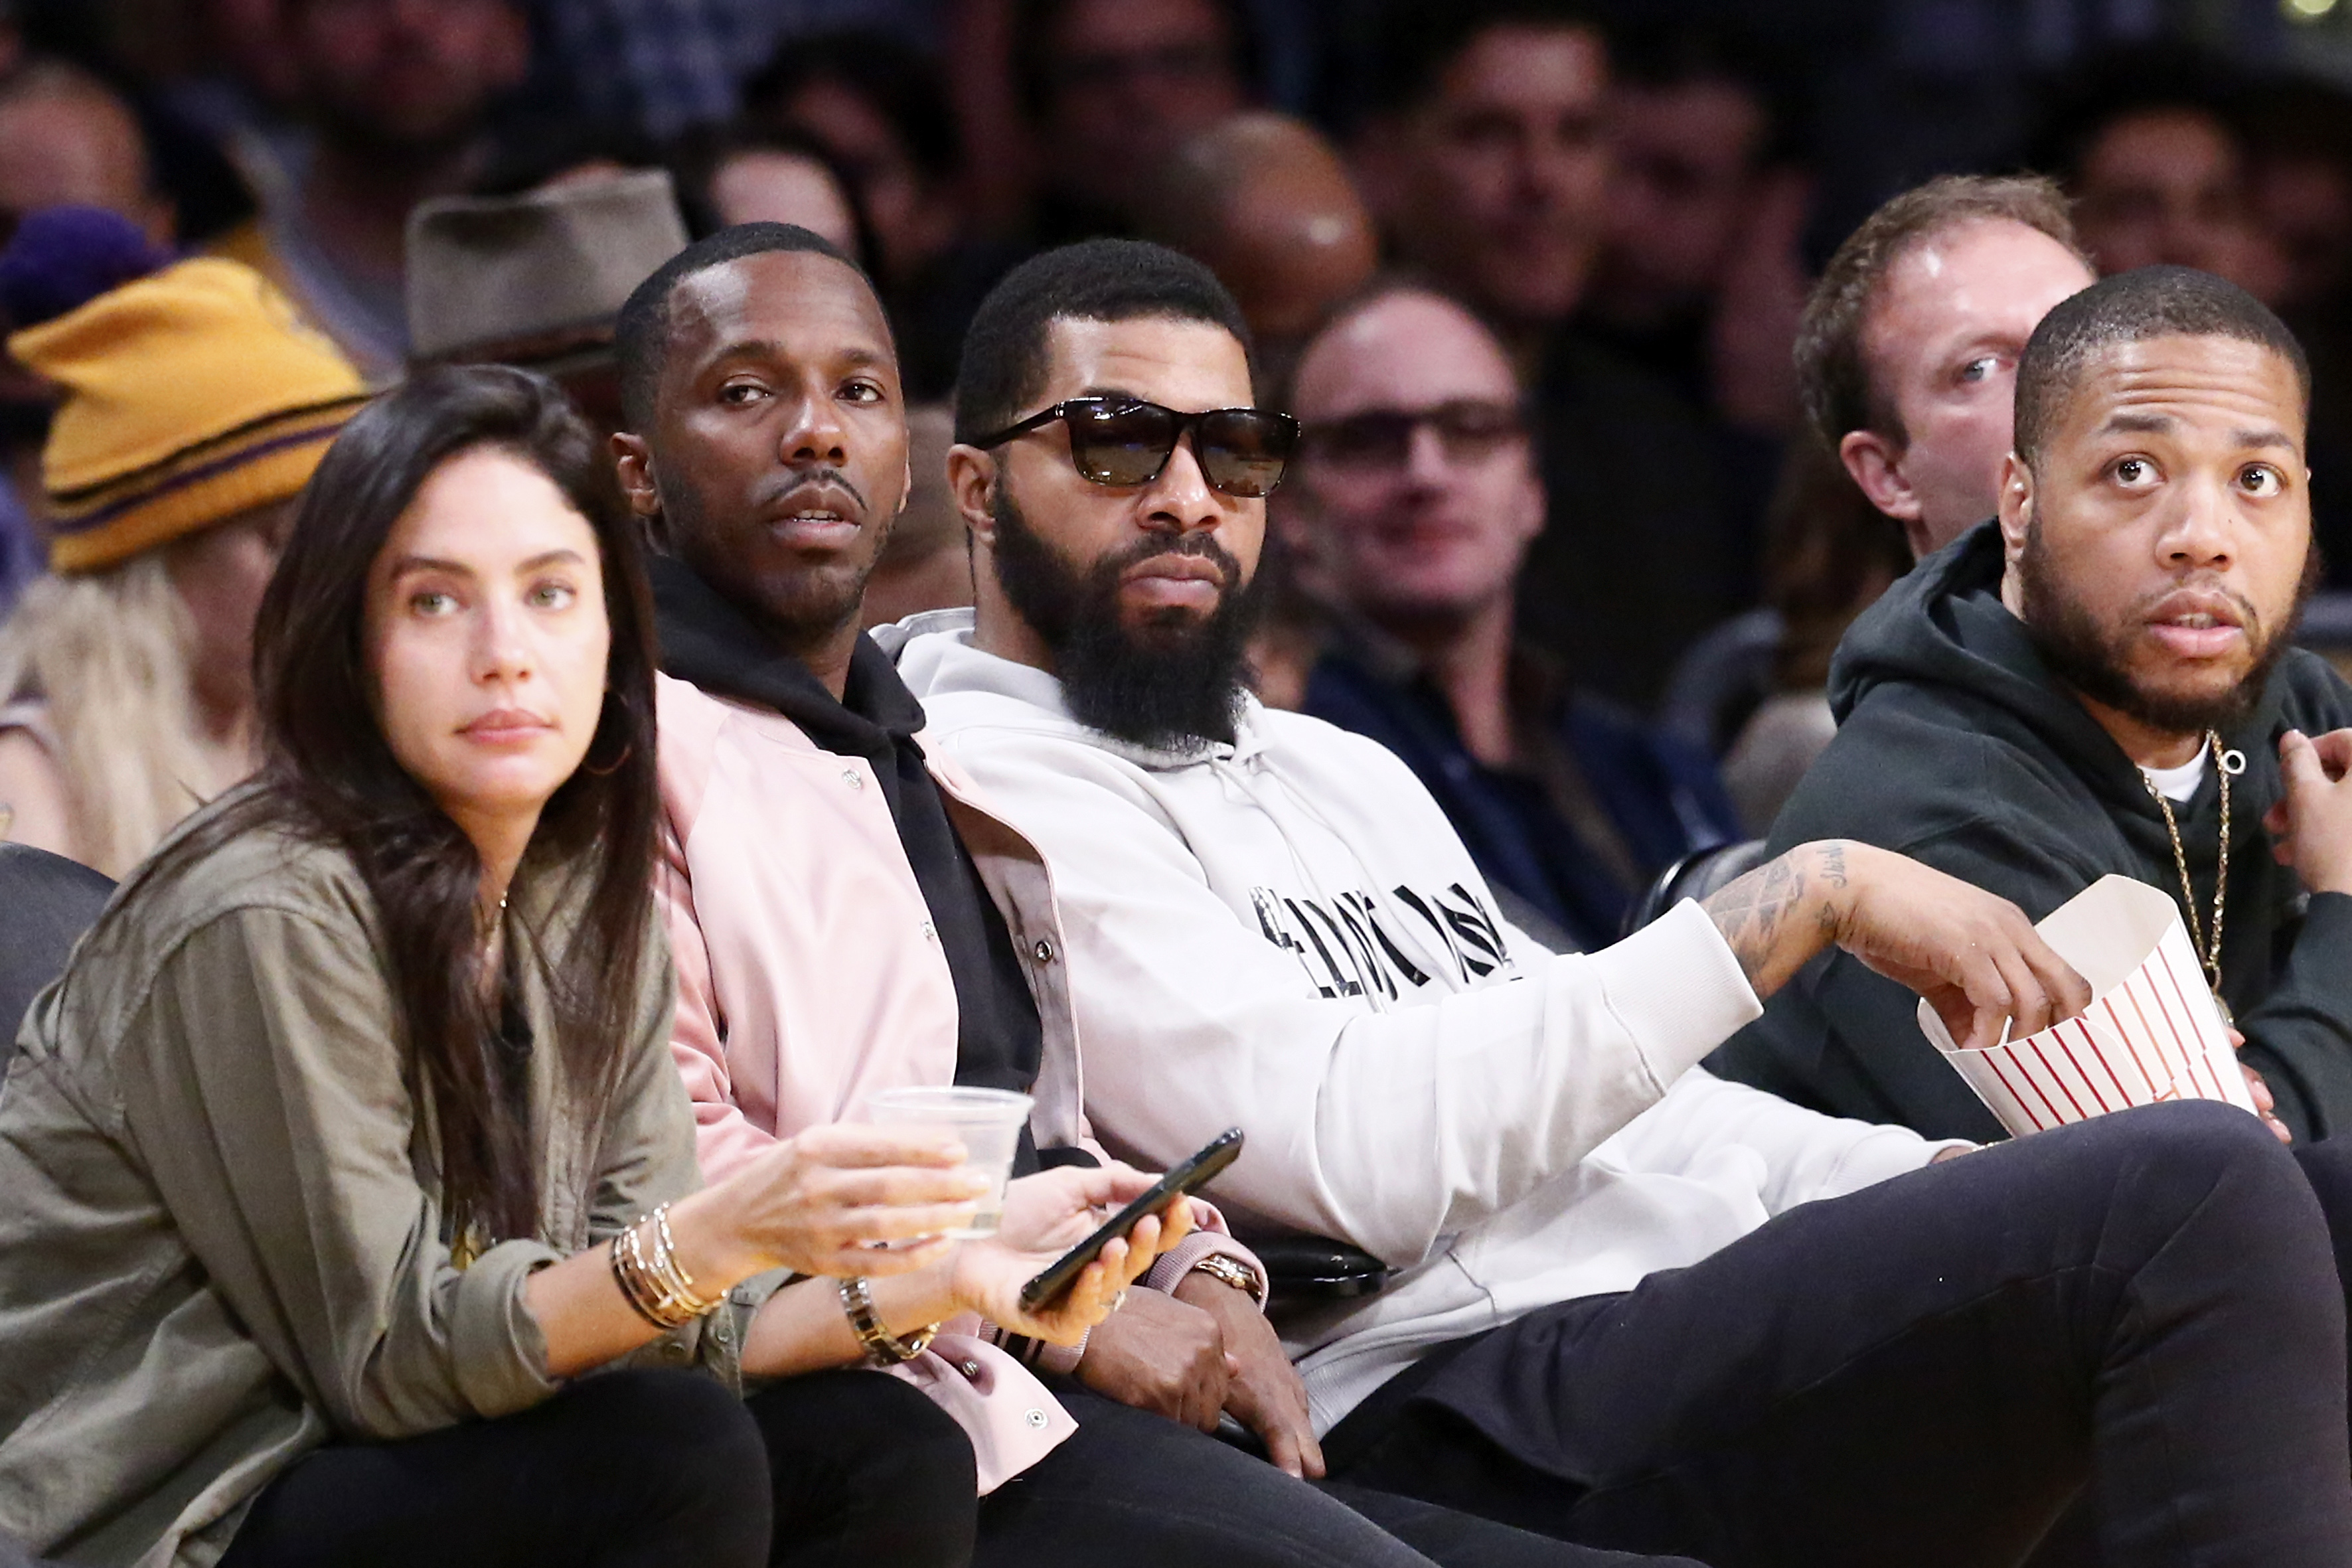 Lakers Expected to Waive DeMarcus Cousins and Sign Markieff Morris